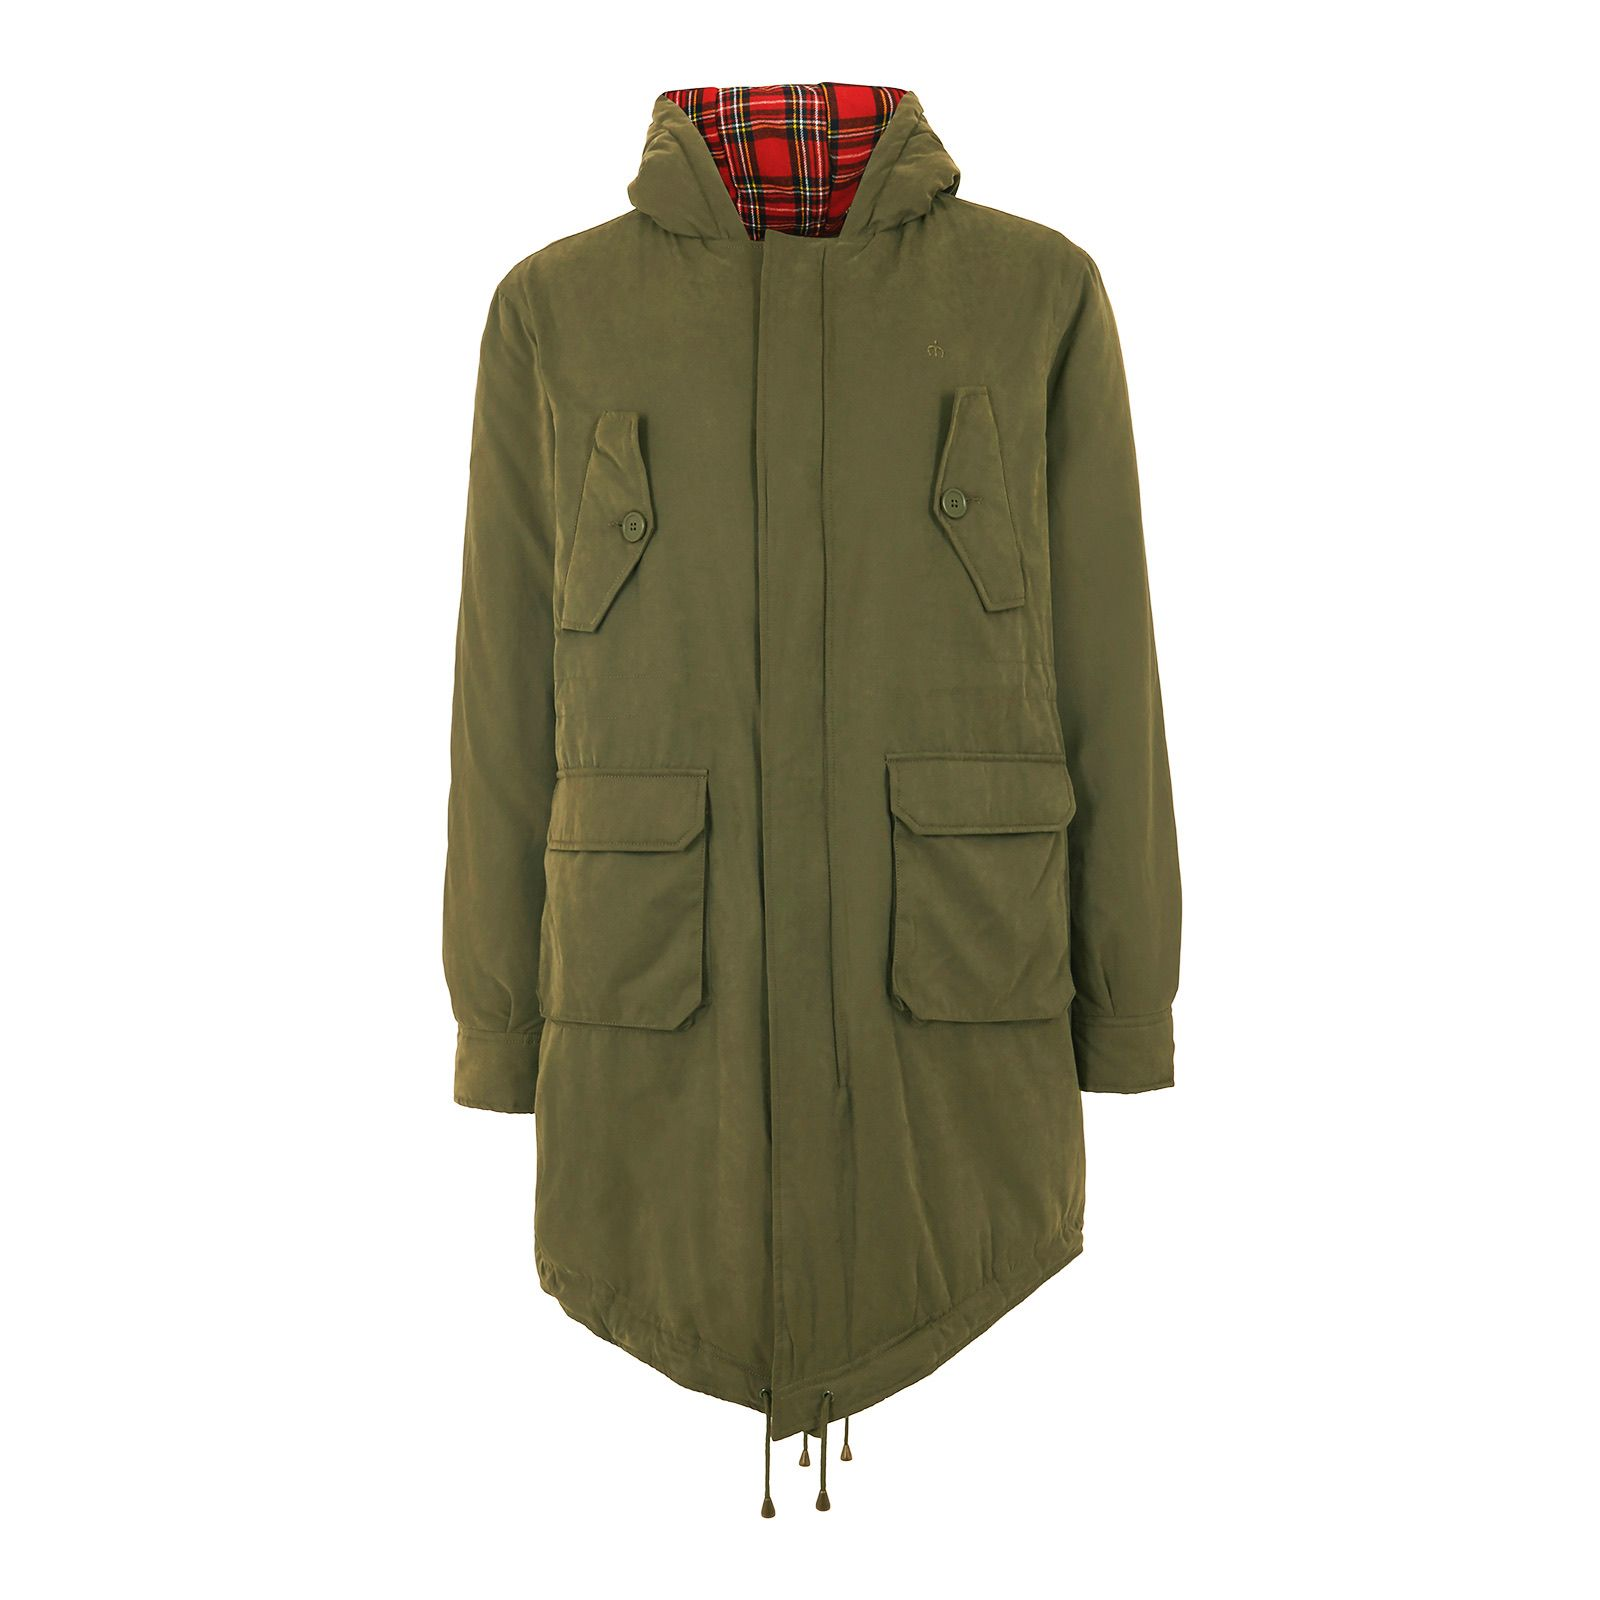 Merc TOBIAS FISHTAIL PARKA in Combat Green